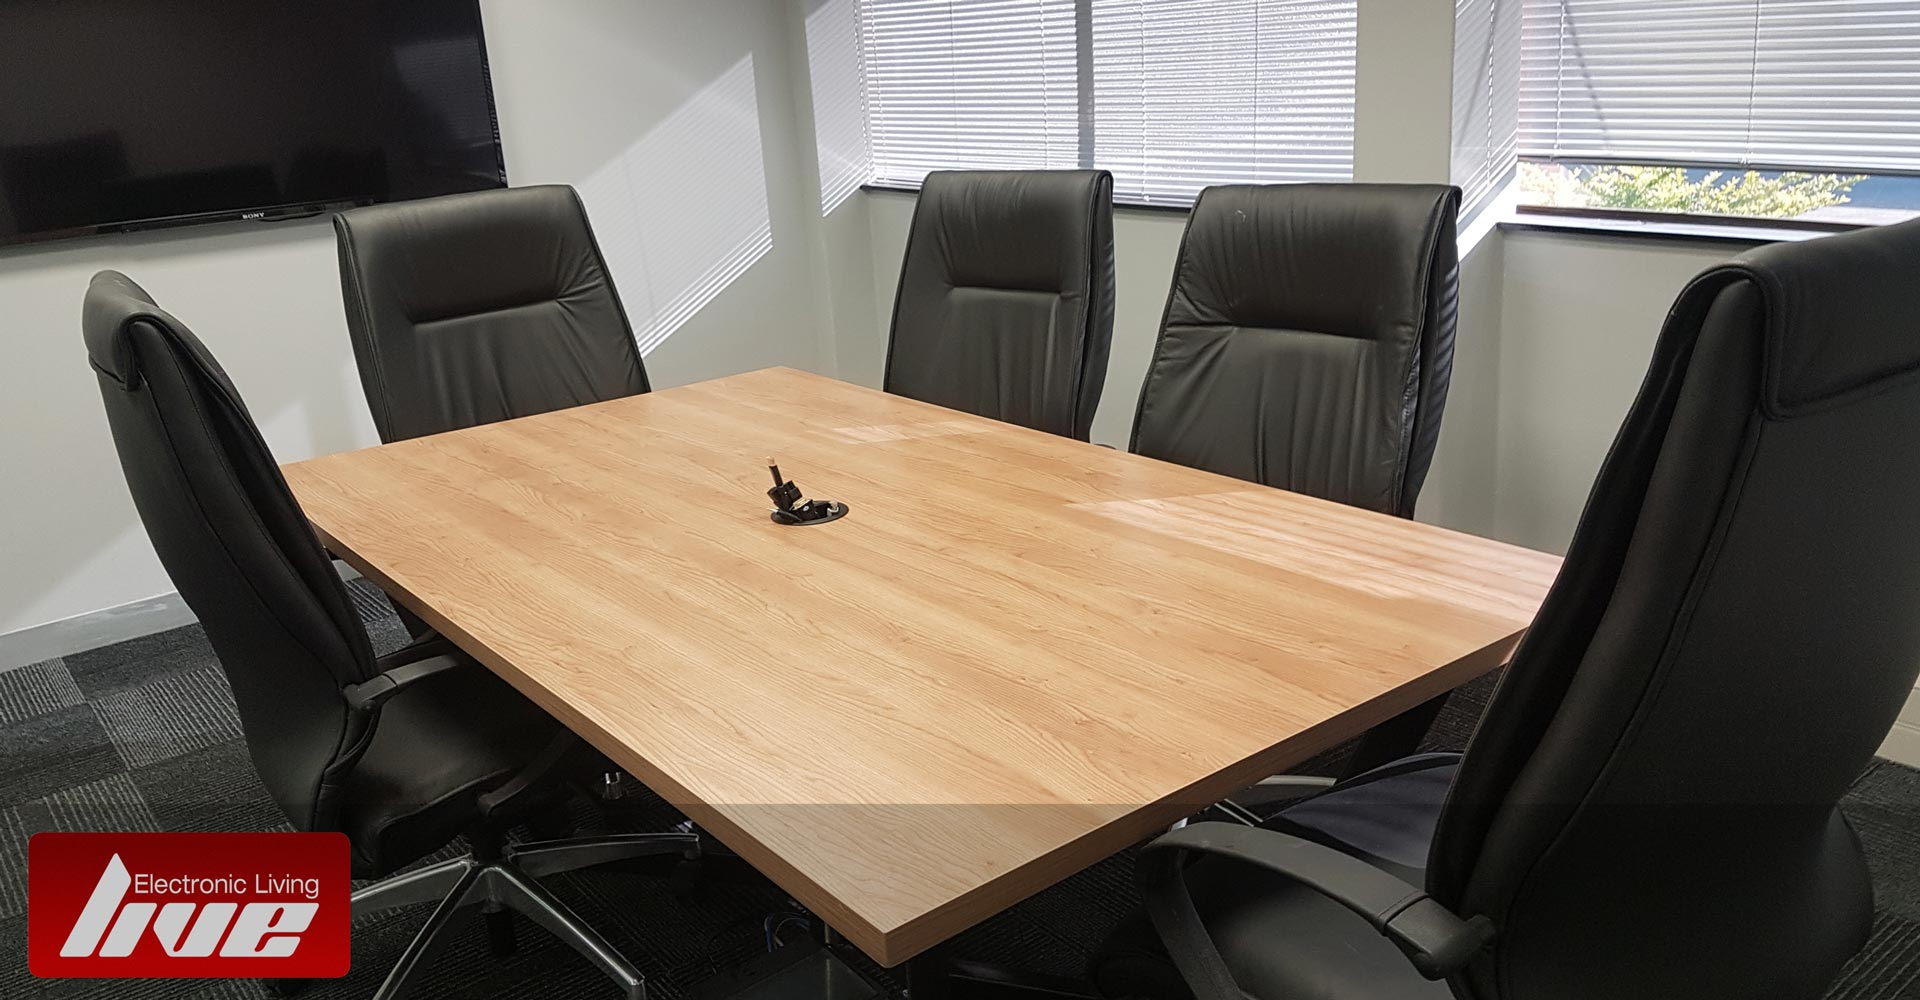 Huddle and Boardrooms, Richards Bay